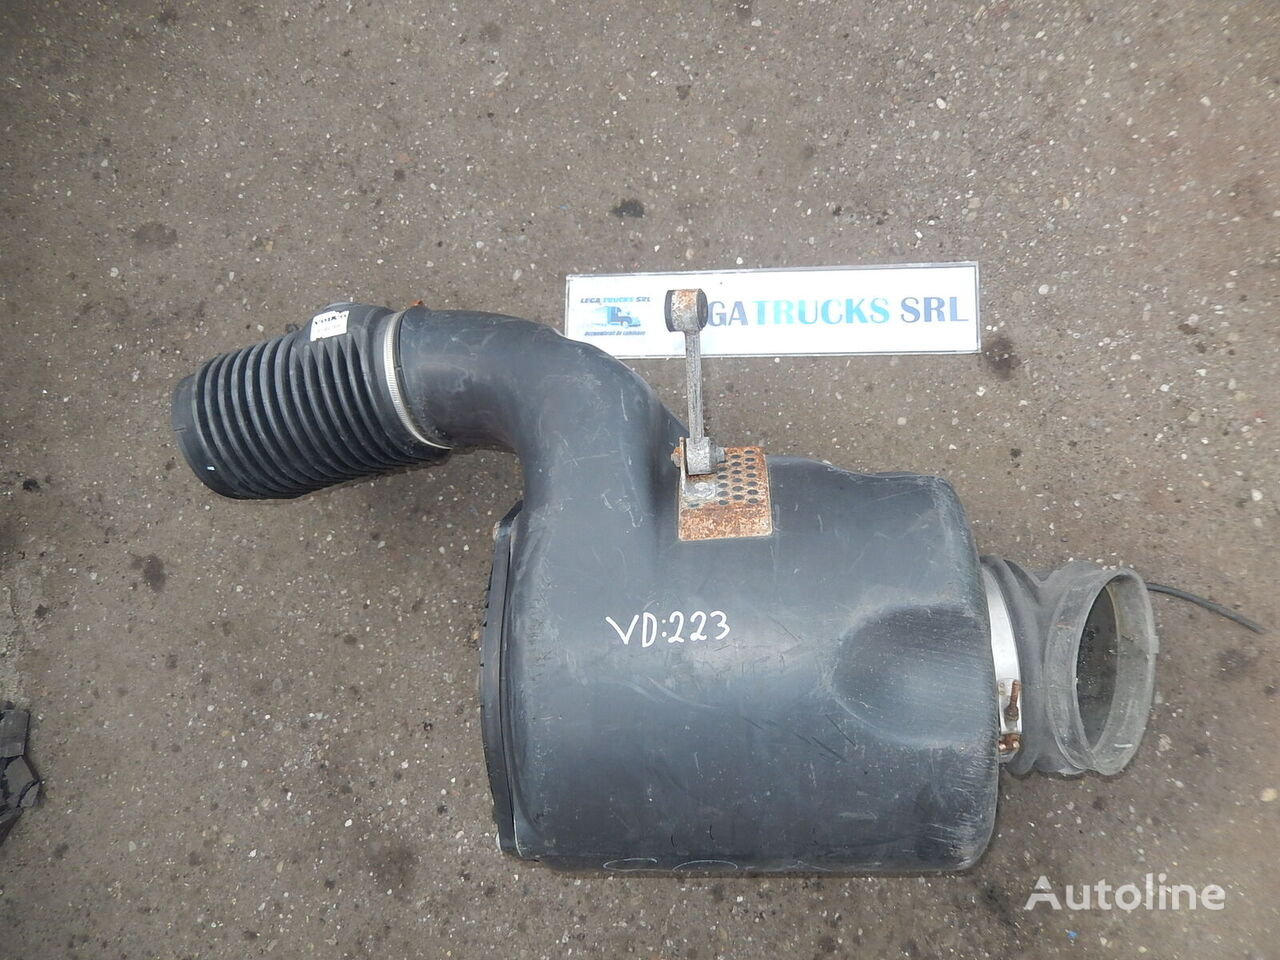 Tubulatura aer Volvo / VD223 / 39795056640 VOLVO Tubulatura aer / / 39795056640 other exhaust system spare part for VOLVO tractor unit